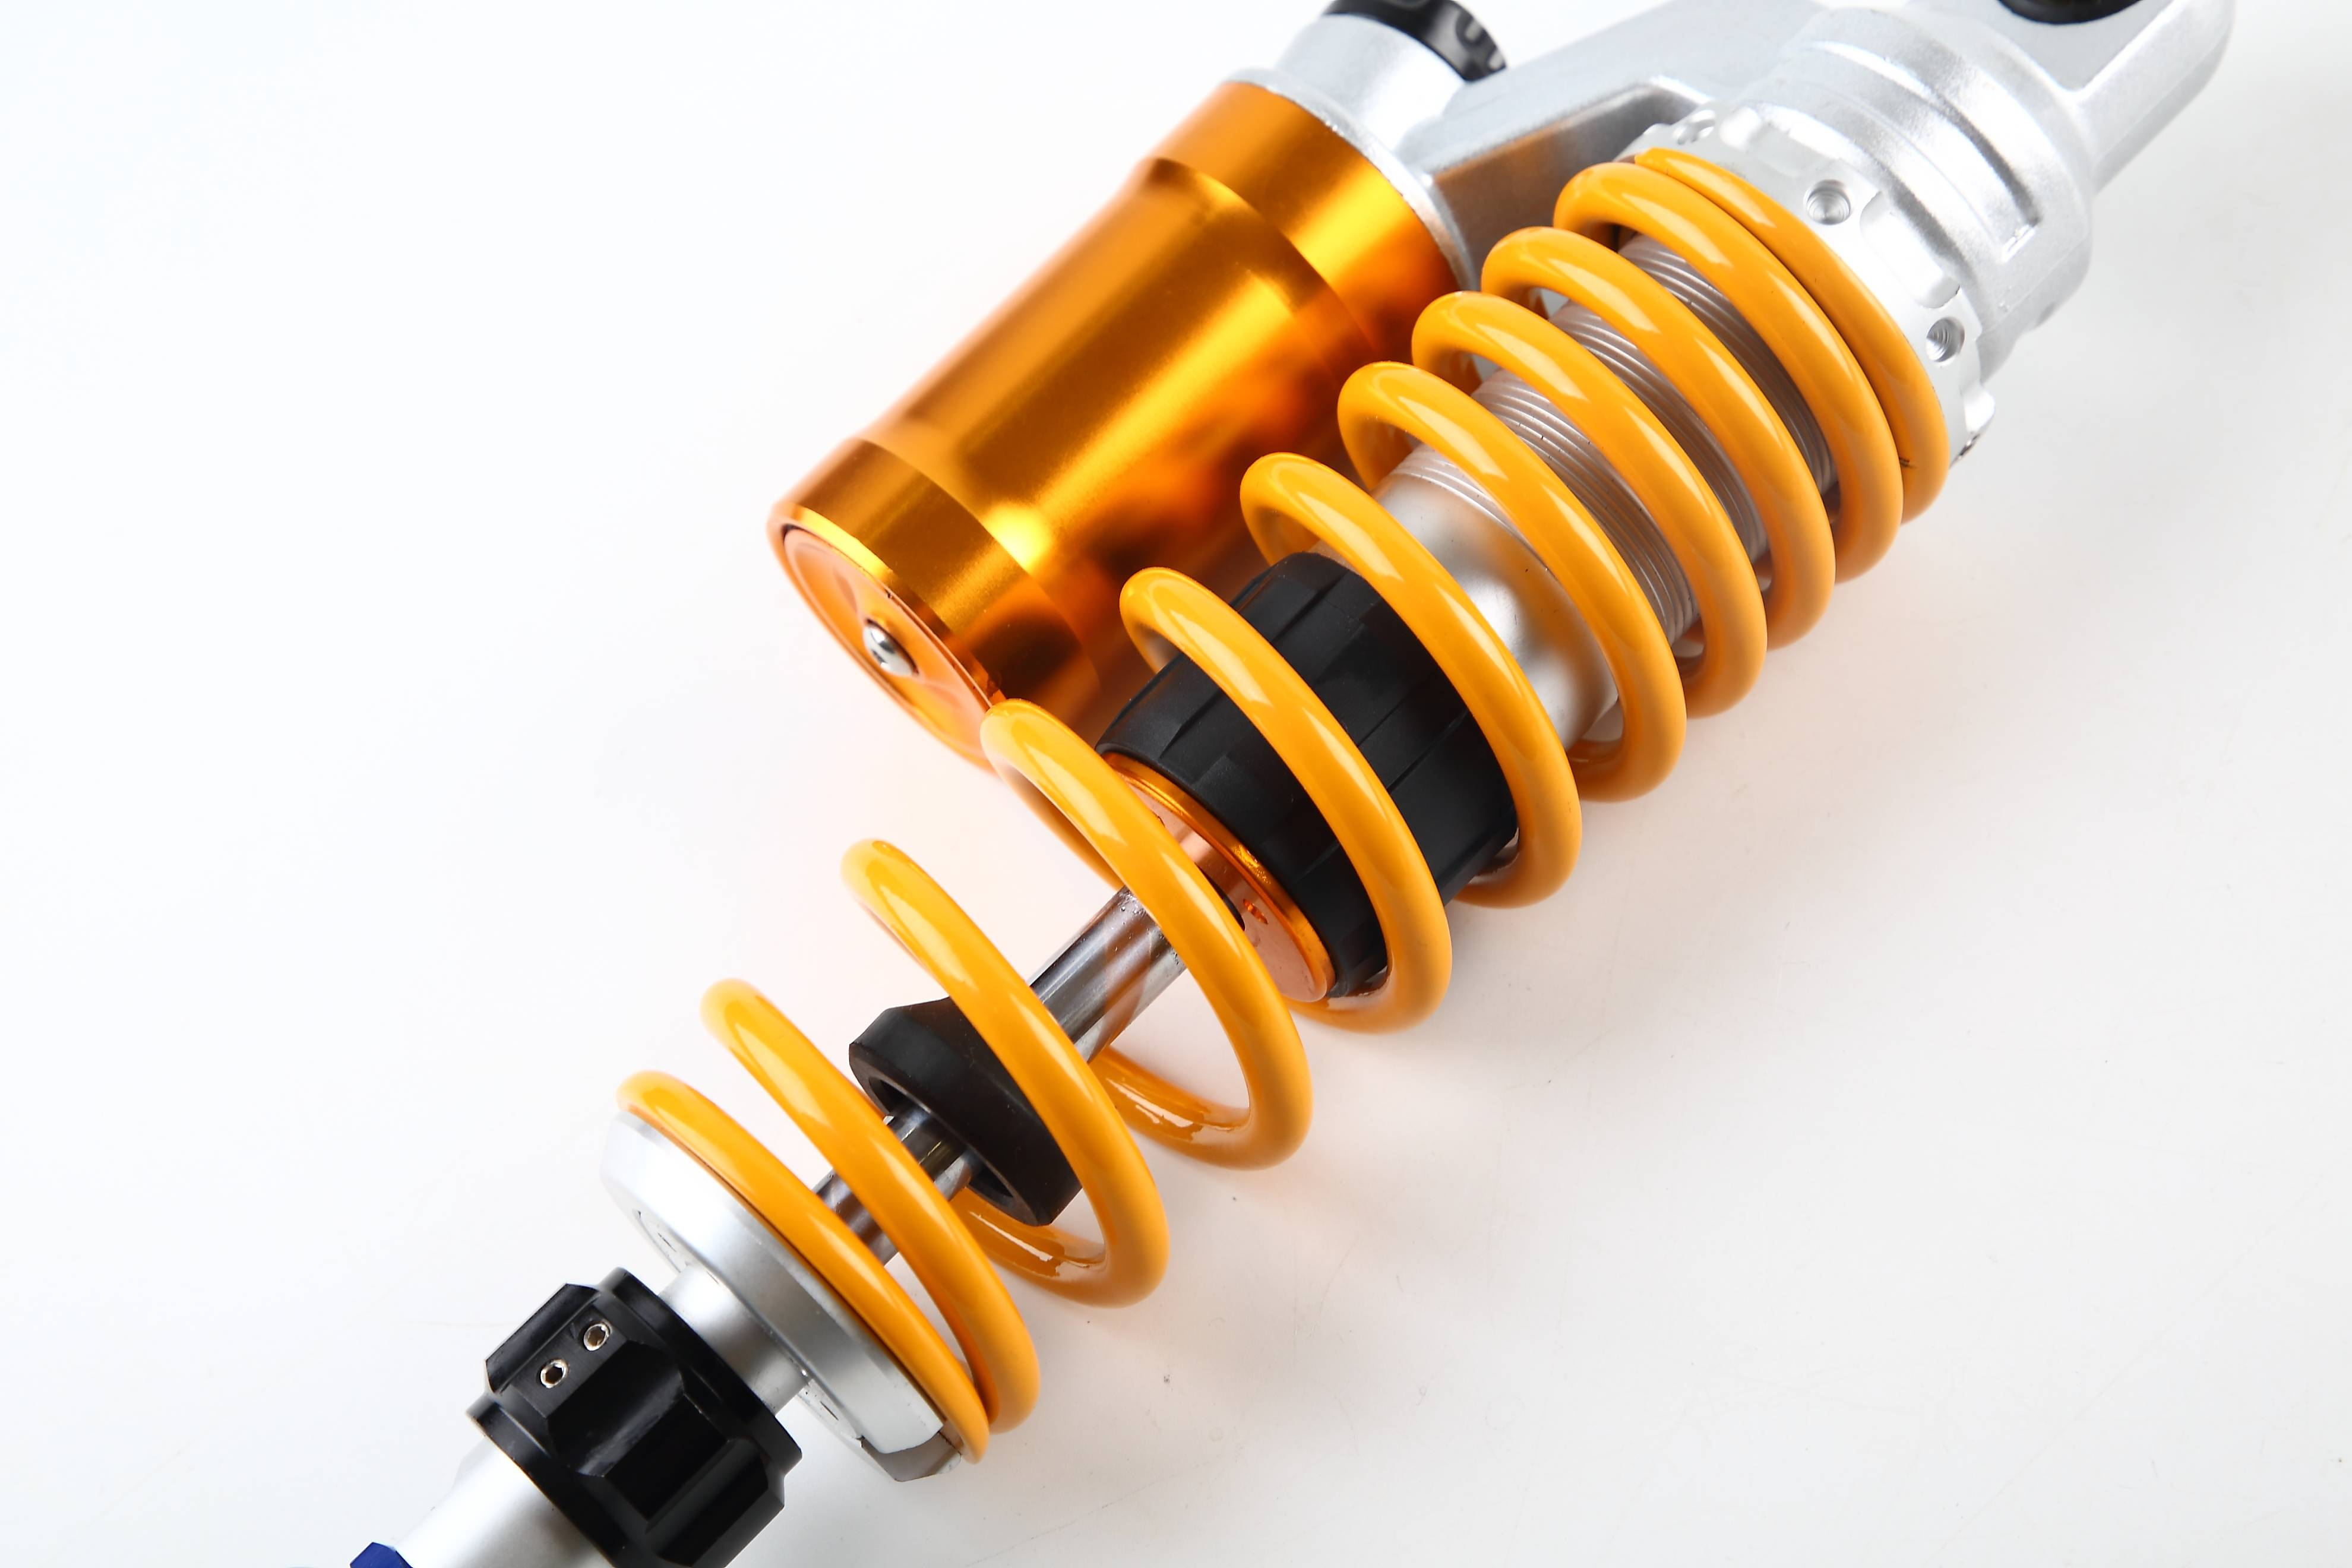 310mm 320mm modify adjustable high quality professional Factory direct sales universal motorcycle rear air shock absorber